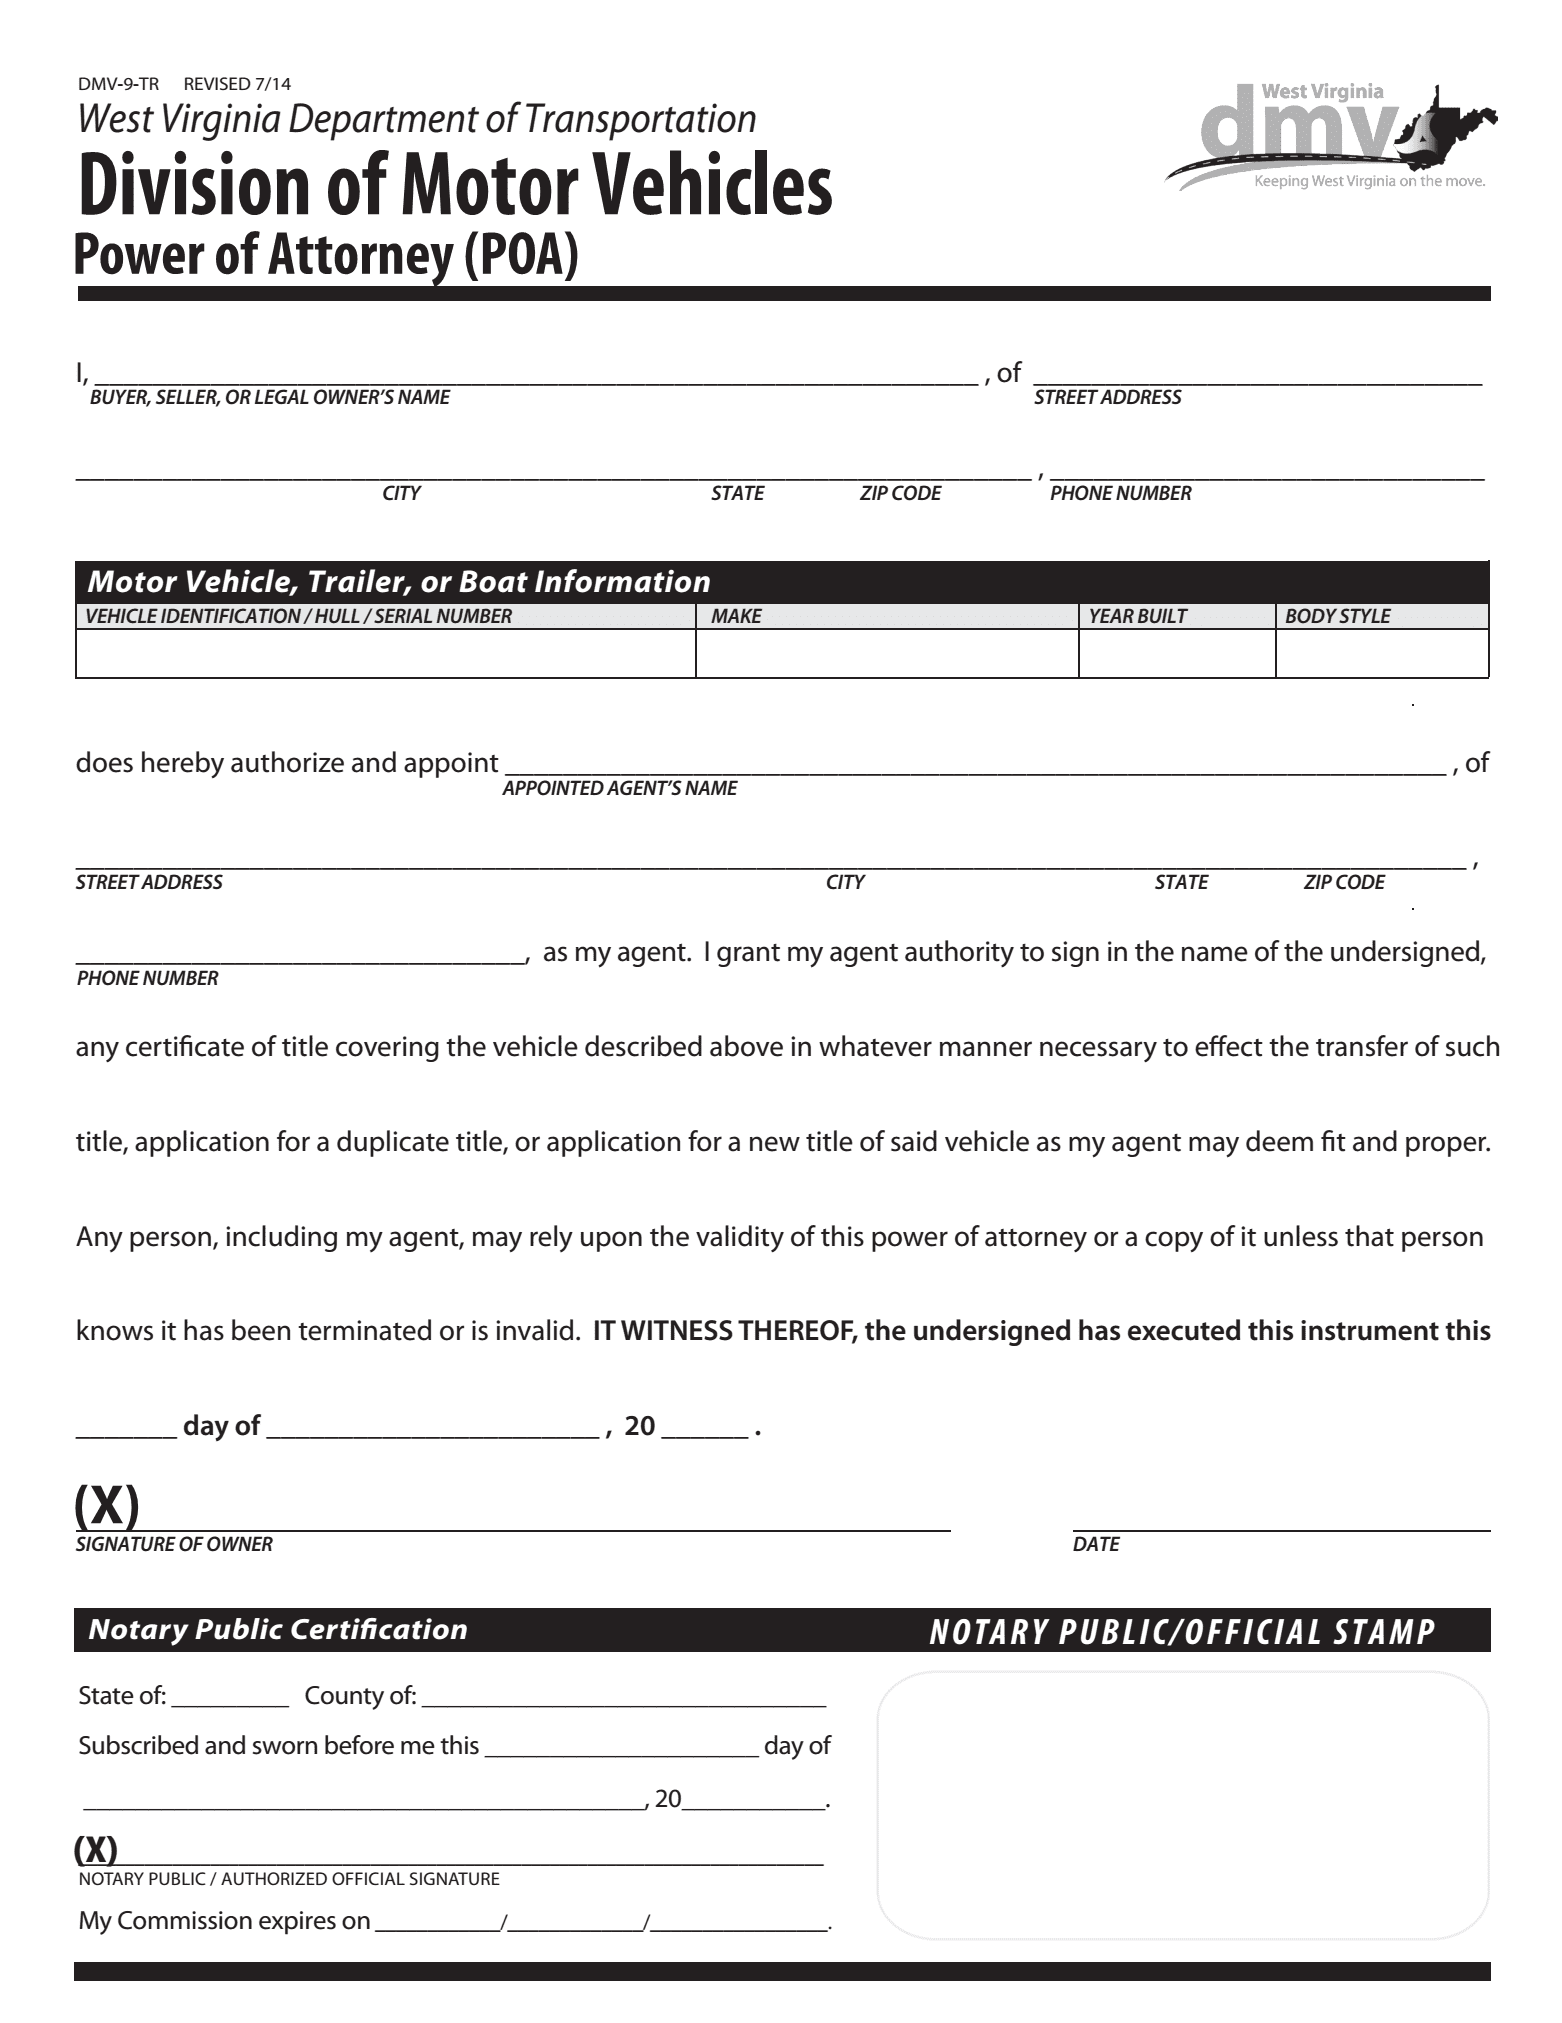 Free West Virginia Motor Vehicle Power Of Attorney Form